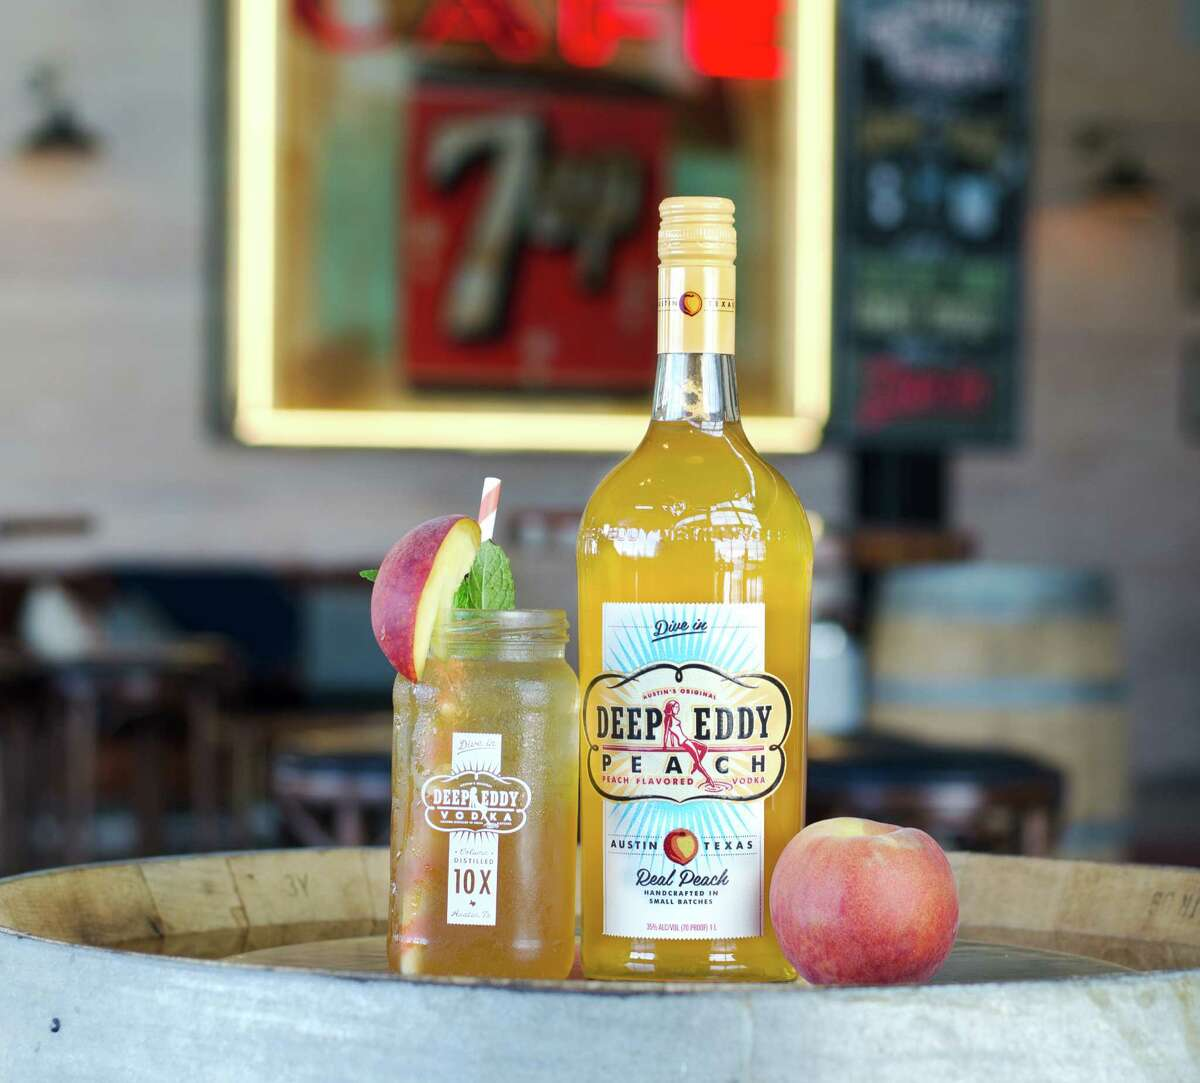 The Southern Belle is a cocktail made with: Deep Eddy Peach Vodka.